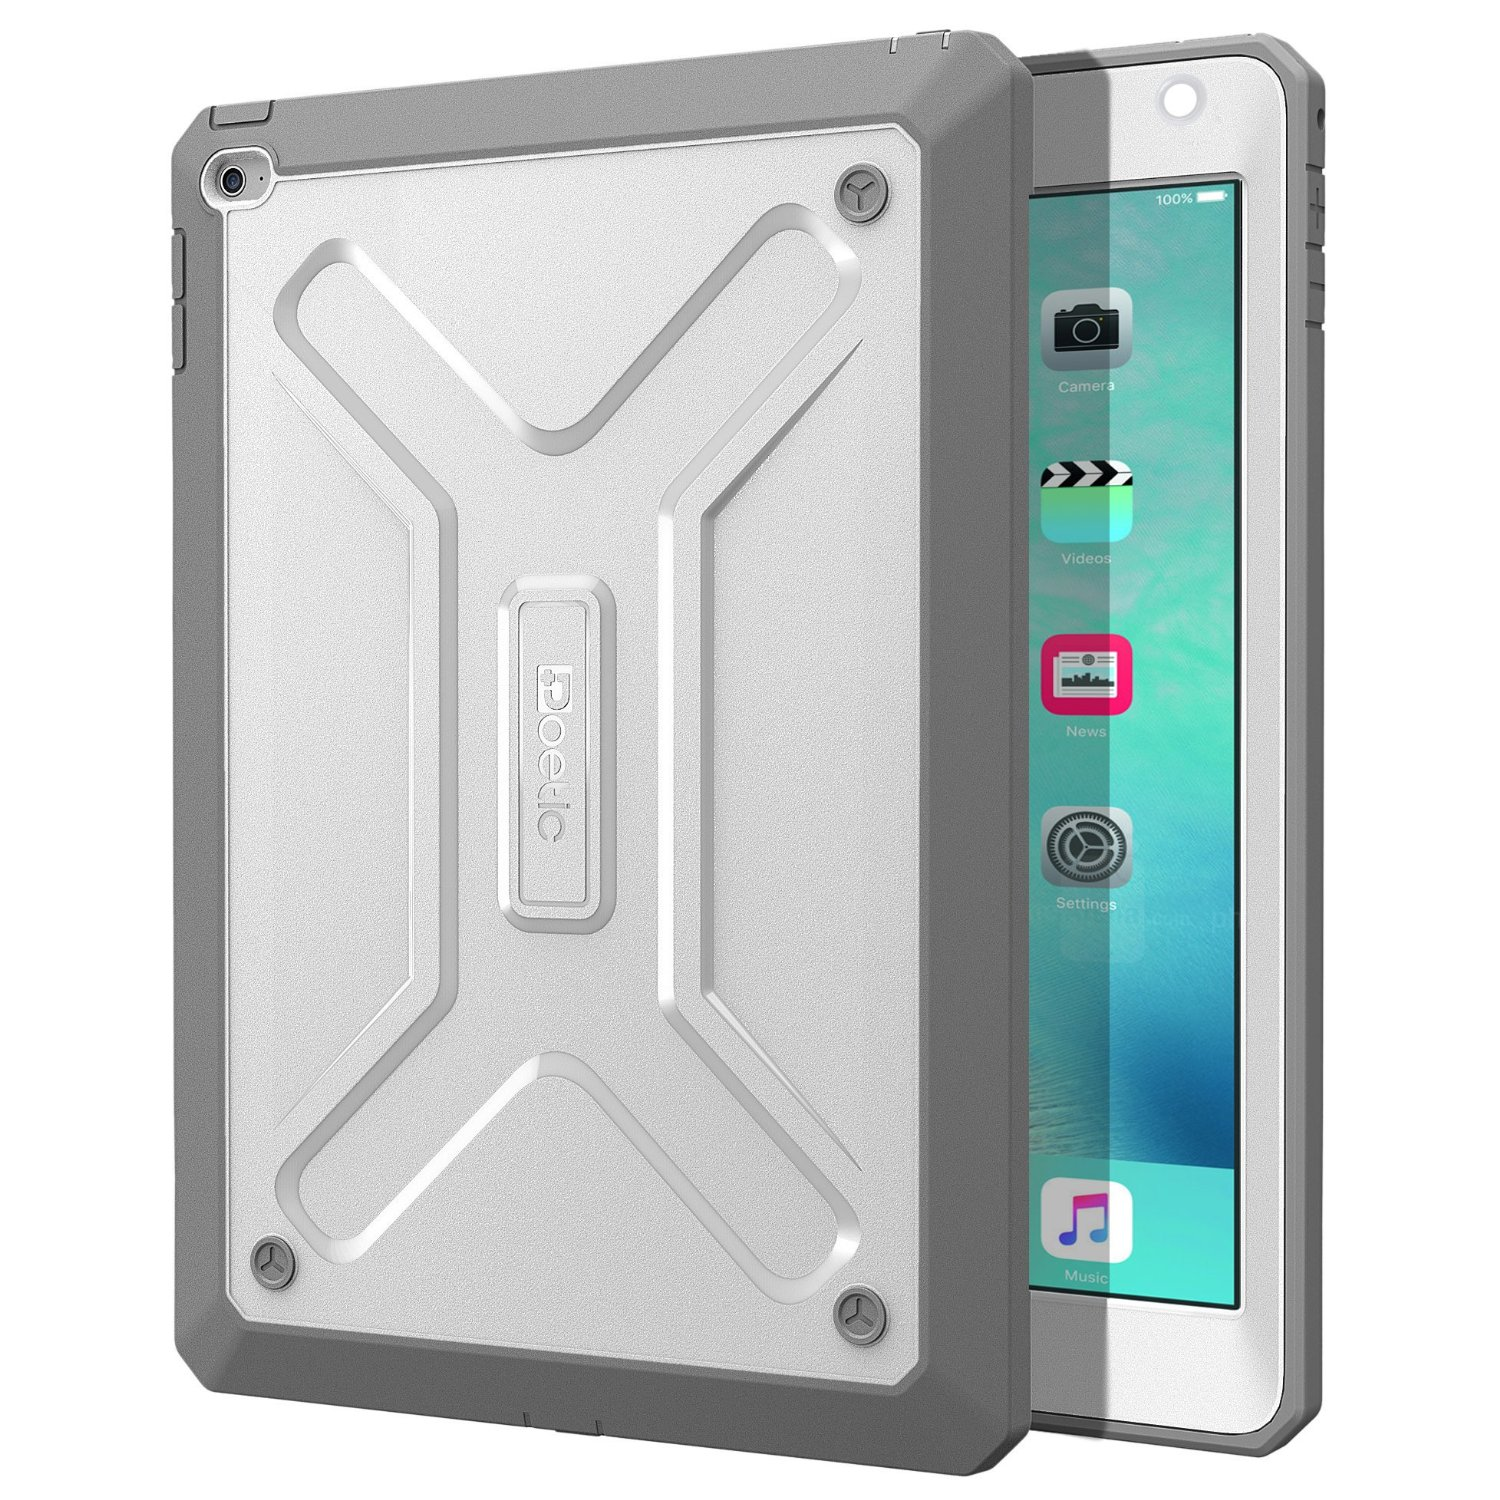 Top 10 Best Apple iPad Mini 4 Cases And Covers